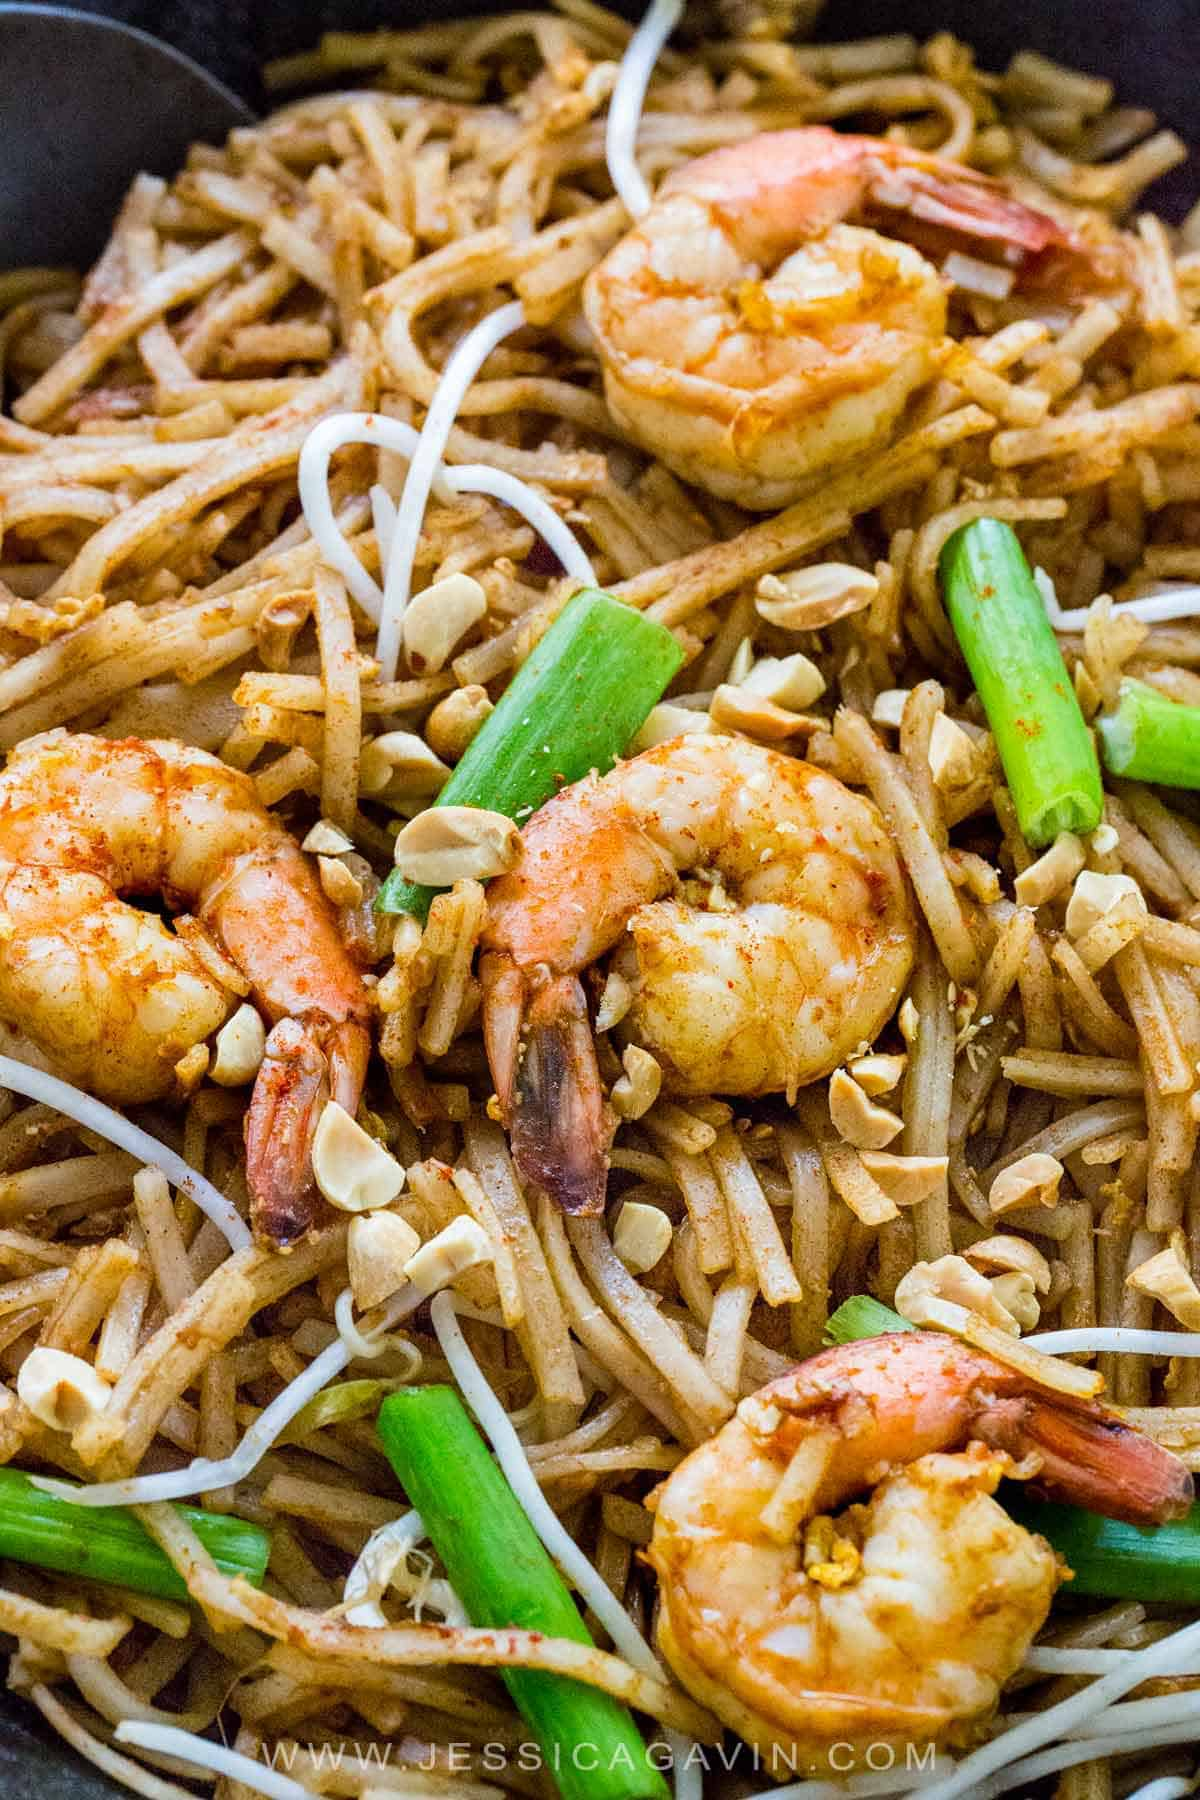 Pad Thai noodles stir-fried and tossed in a flavorful sauce. This authentic recipe features succulent shrimp, but you can also use chicken, beef, tofu or a combination. #padthai #thairecipes #shrimp